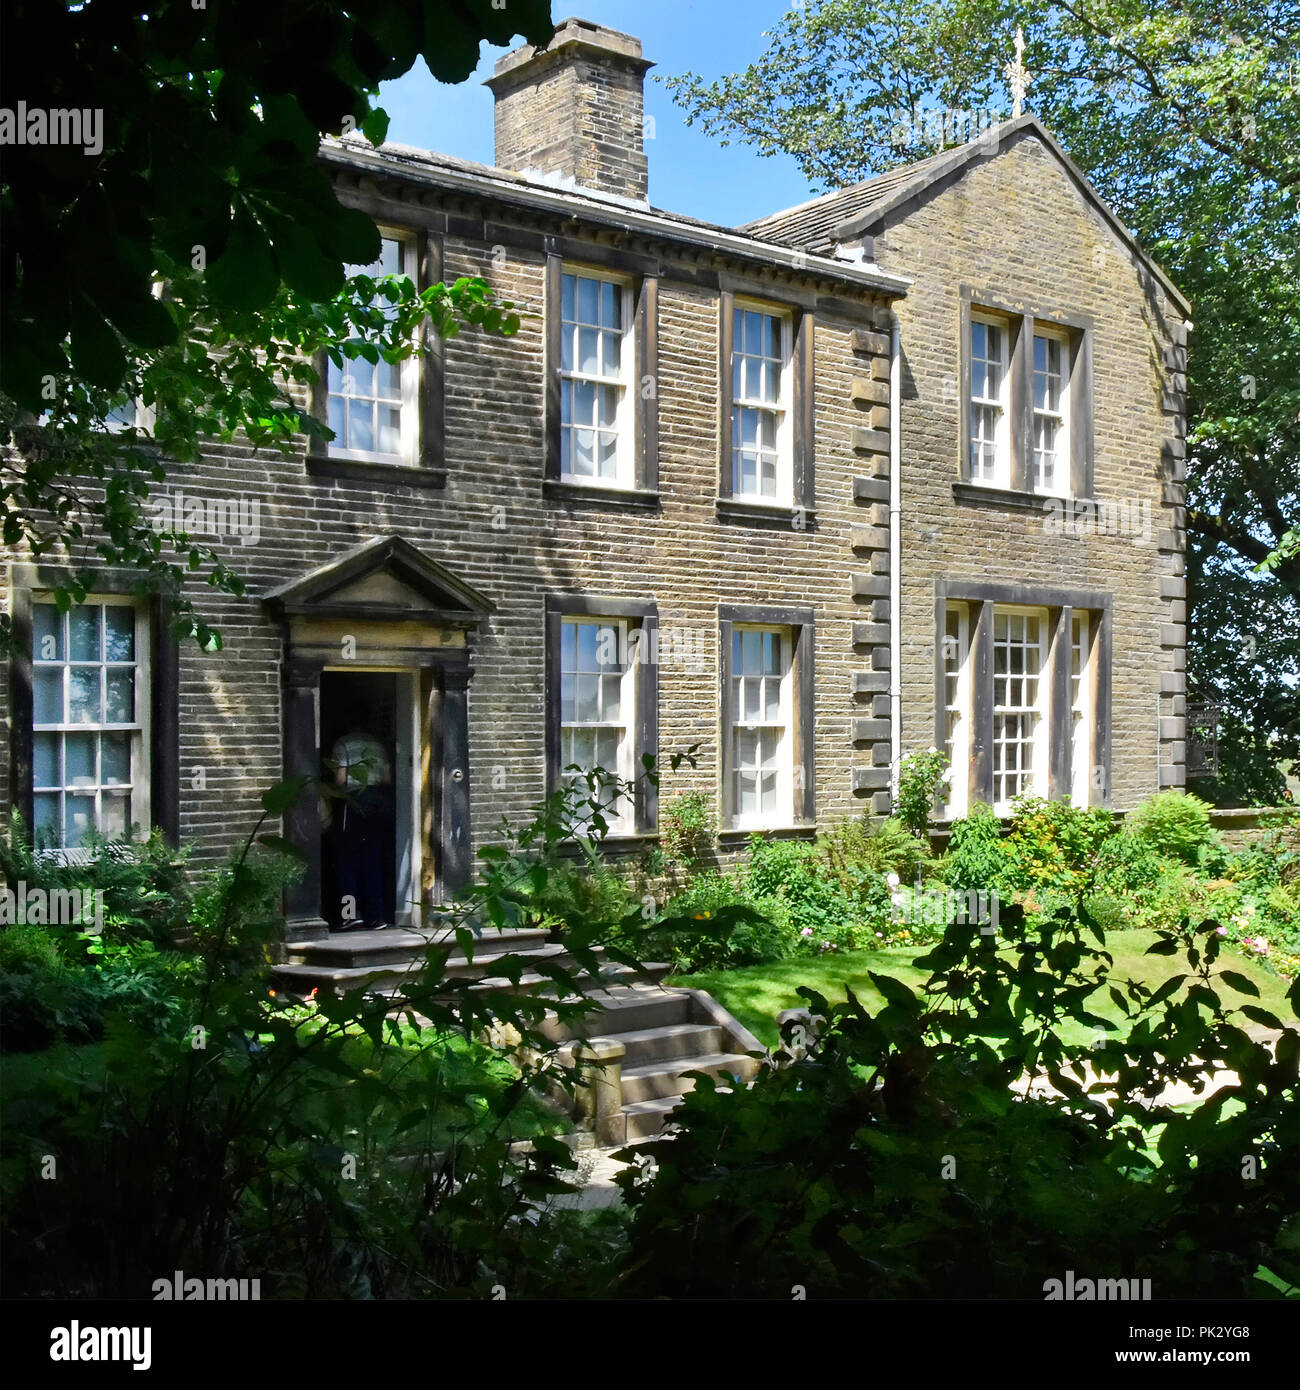 Bronte sisters family home & garden now the Brontes Parsonage Museum supporting a major tourism attraction to the Haworth village & West Yorkshire UK - Stock Image